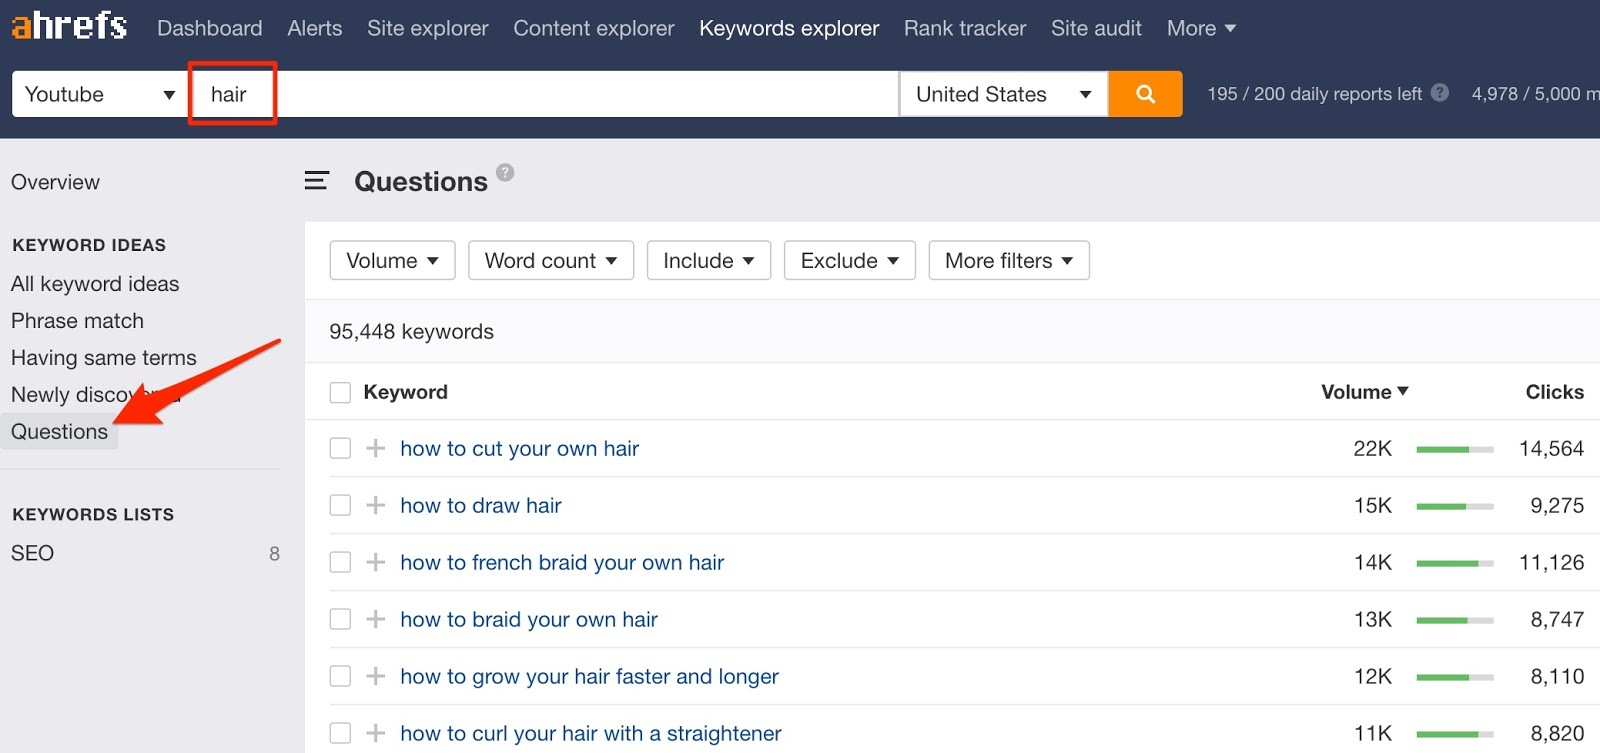 Keywords Explorer 1